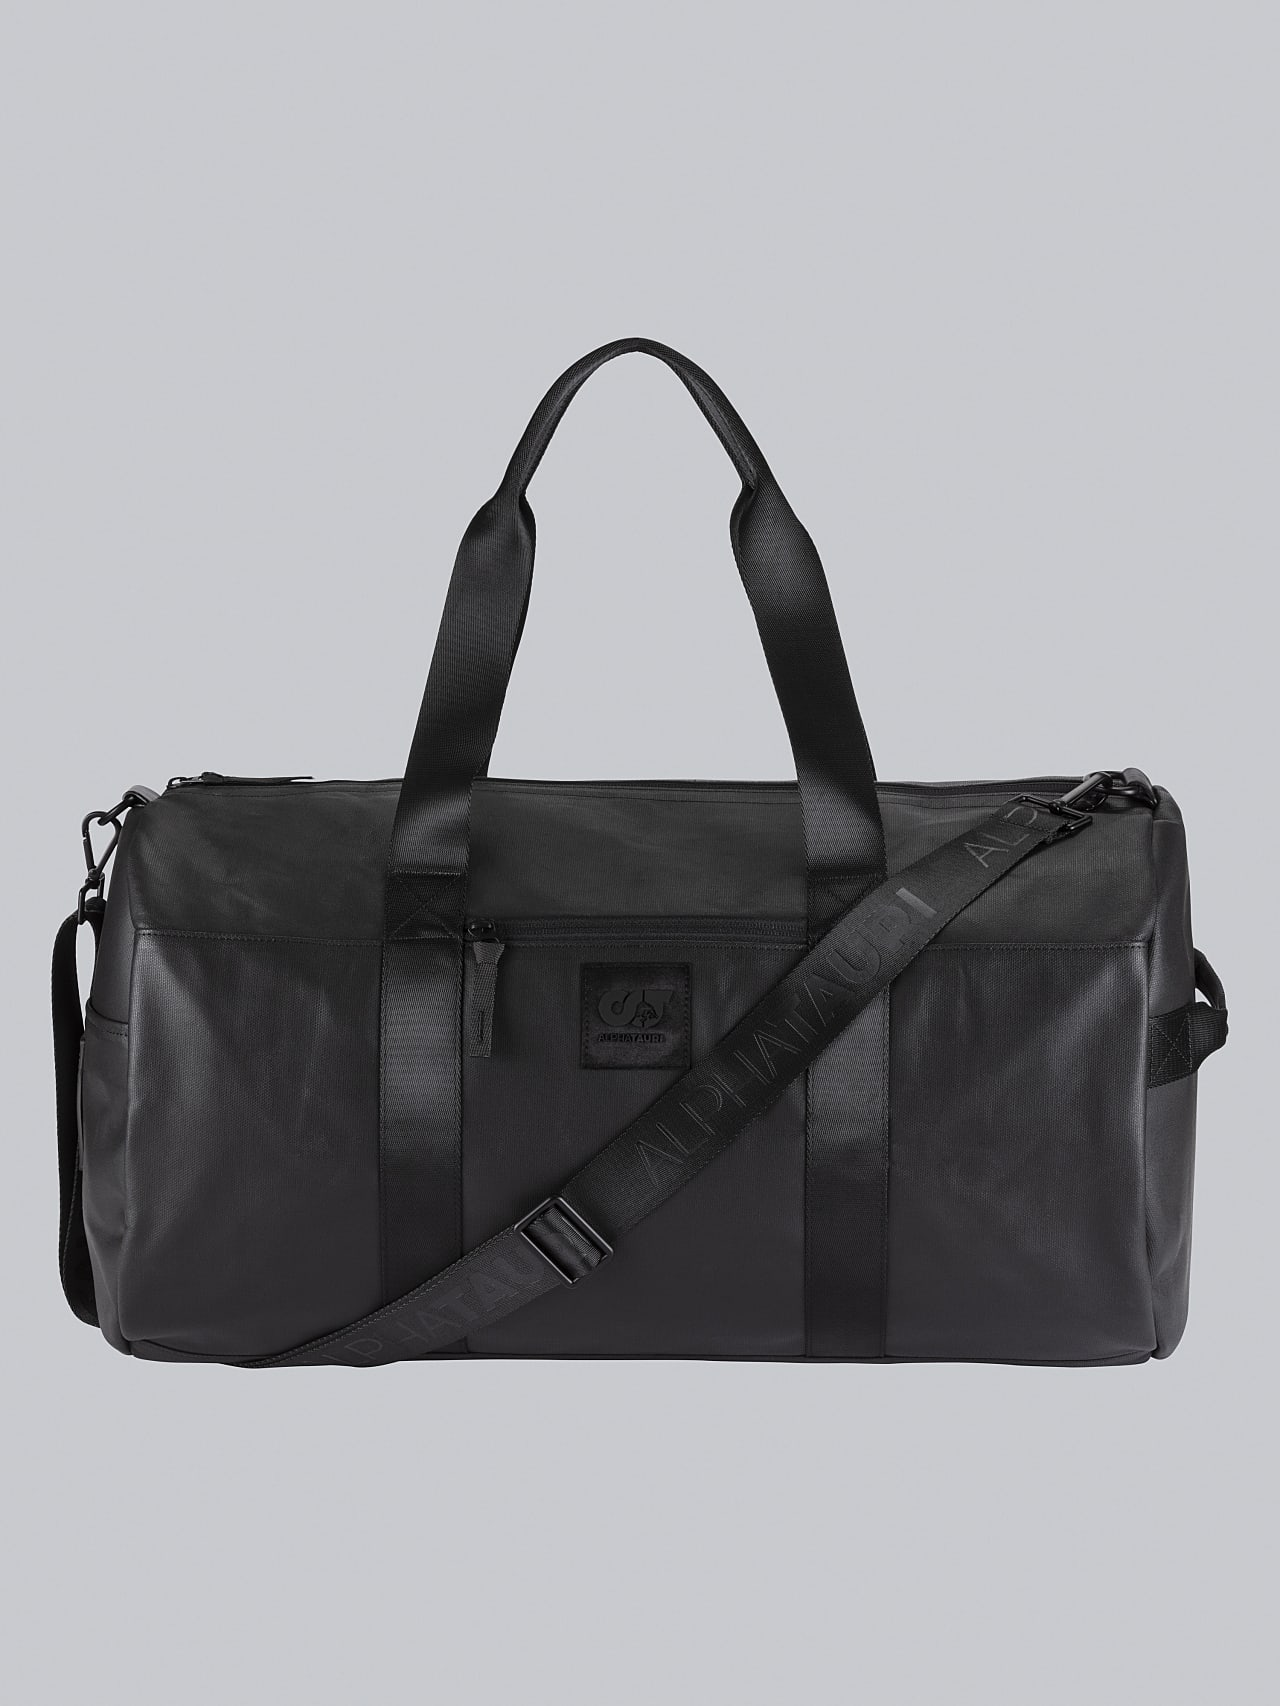 AWEE V4.Y5.02 Water-Repellent Duffle Bag dark grey / anthracite Back Alpha Tauri